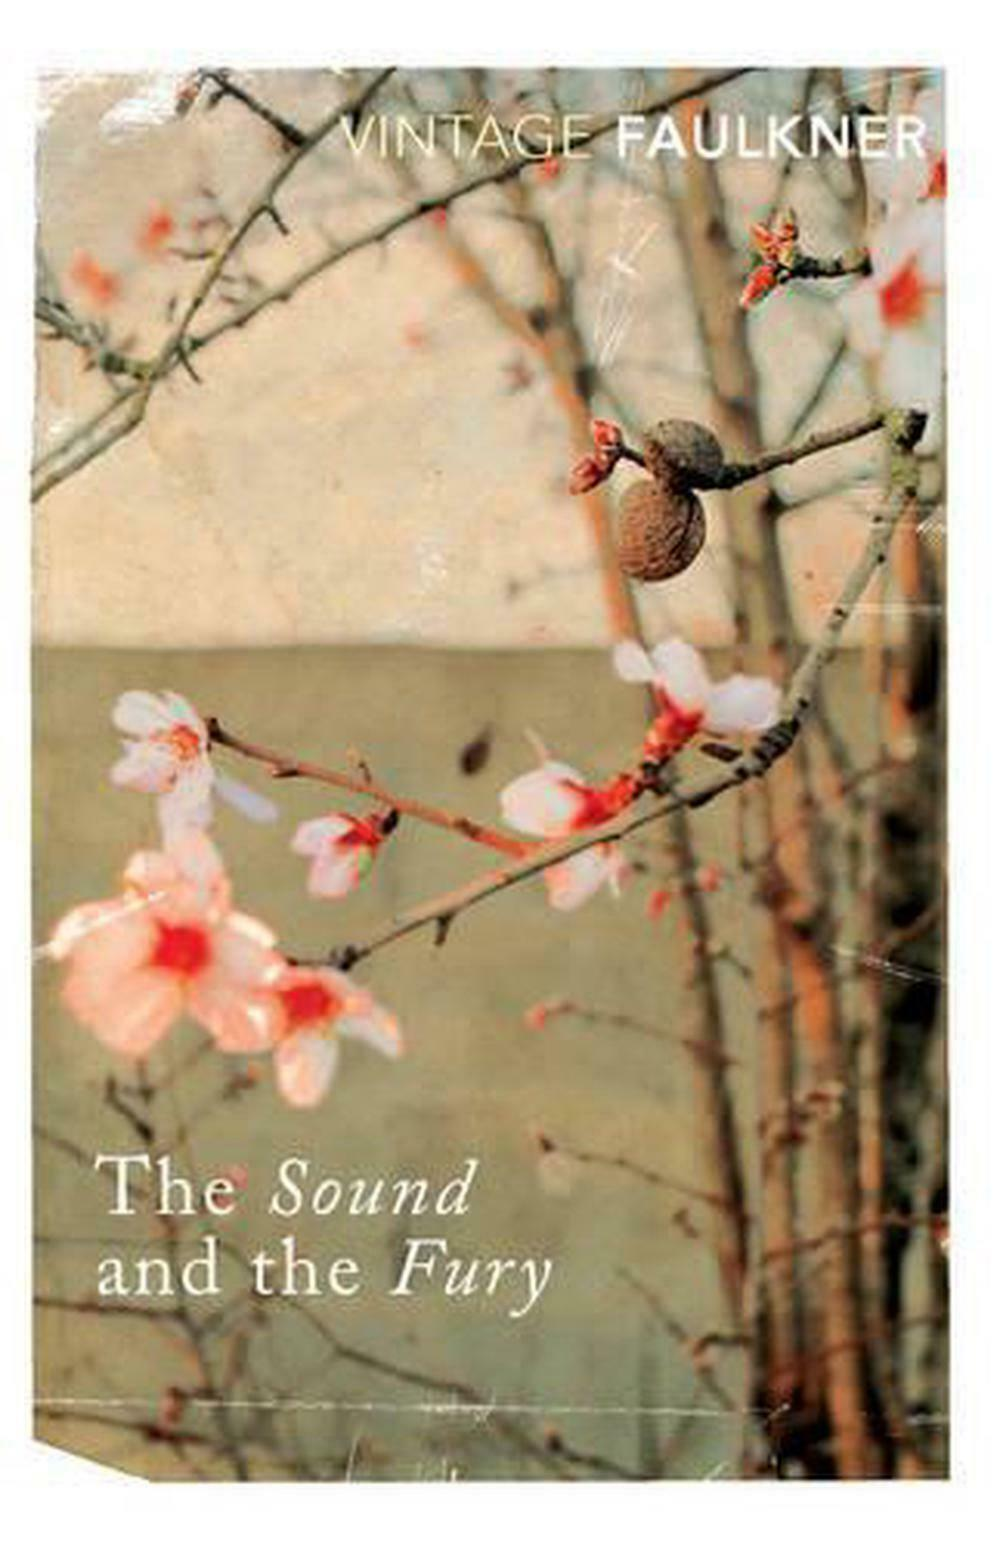 betrayal in the sound and the fury by faulkner Information about writer william faulkner, including a biographical and critical article, a list of published works, and other information resources go to: gallery: from the sound and the fury in 1929 to go down, moses in.